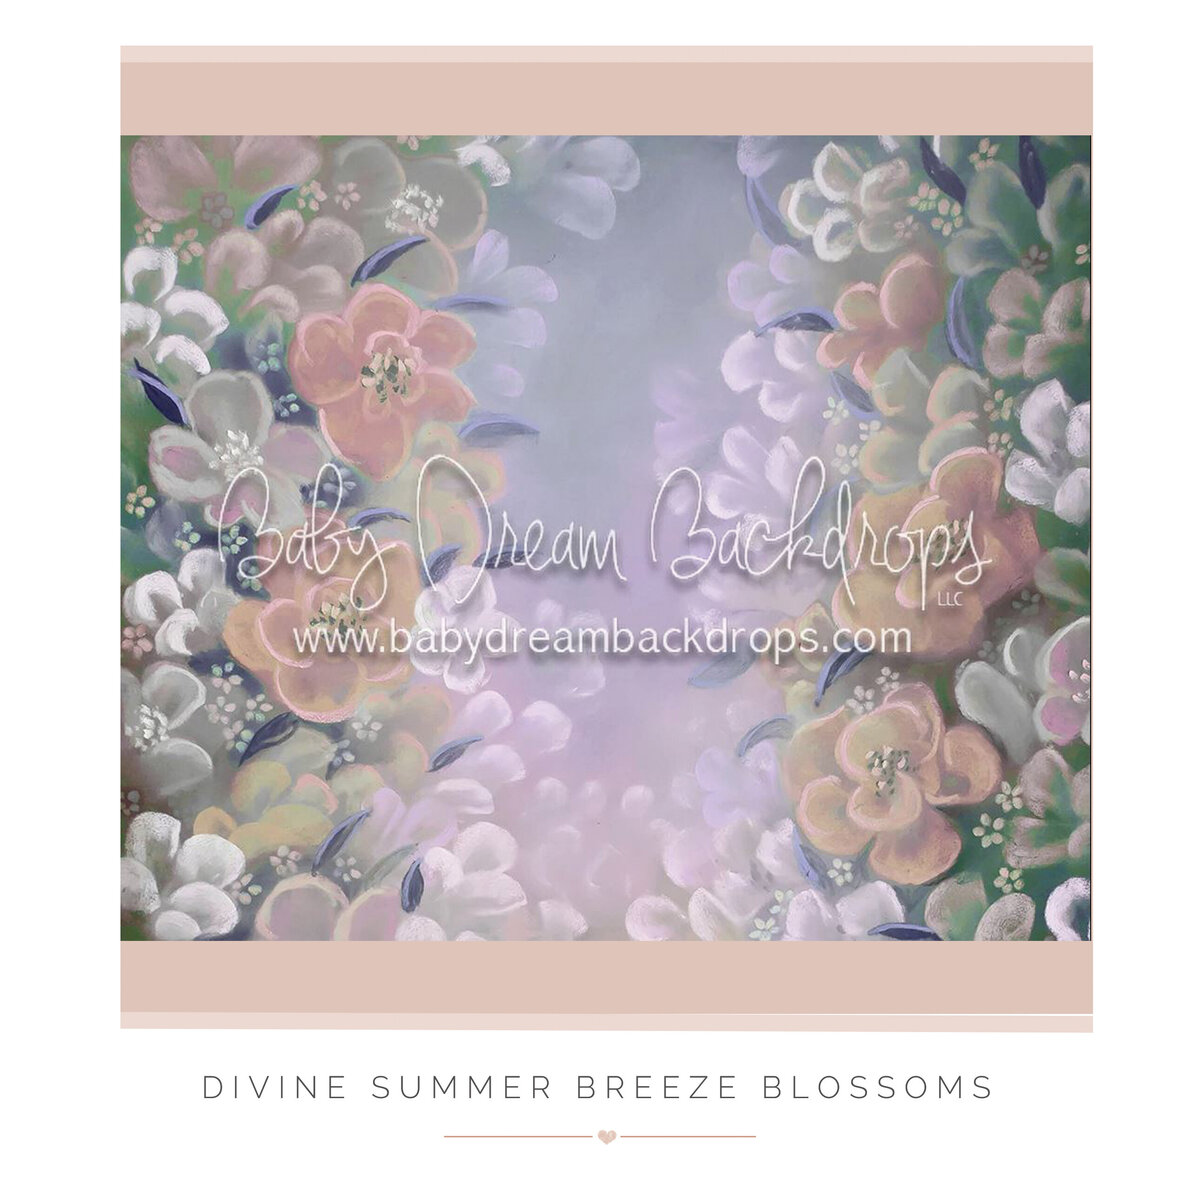 Divine Summer Breeze Blossoms